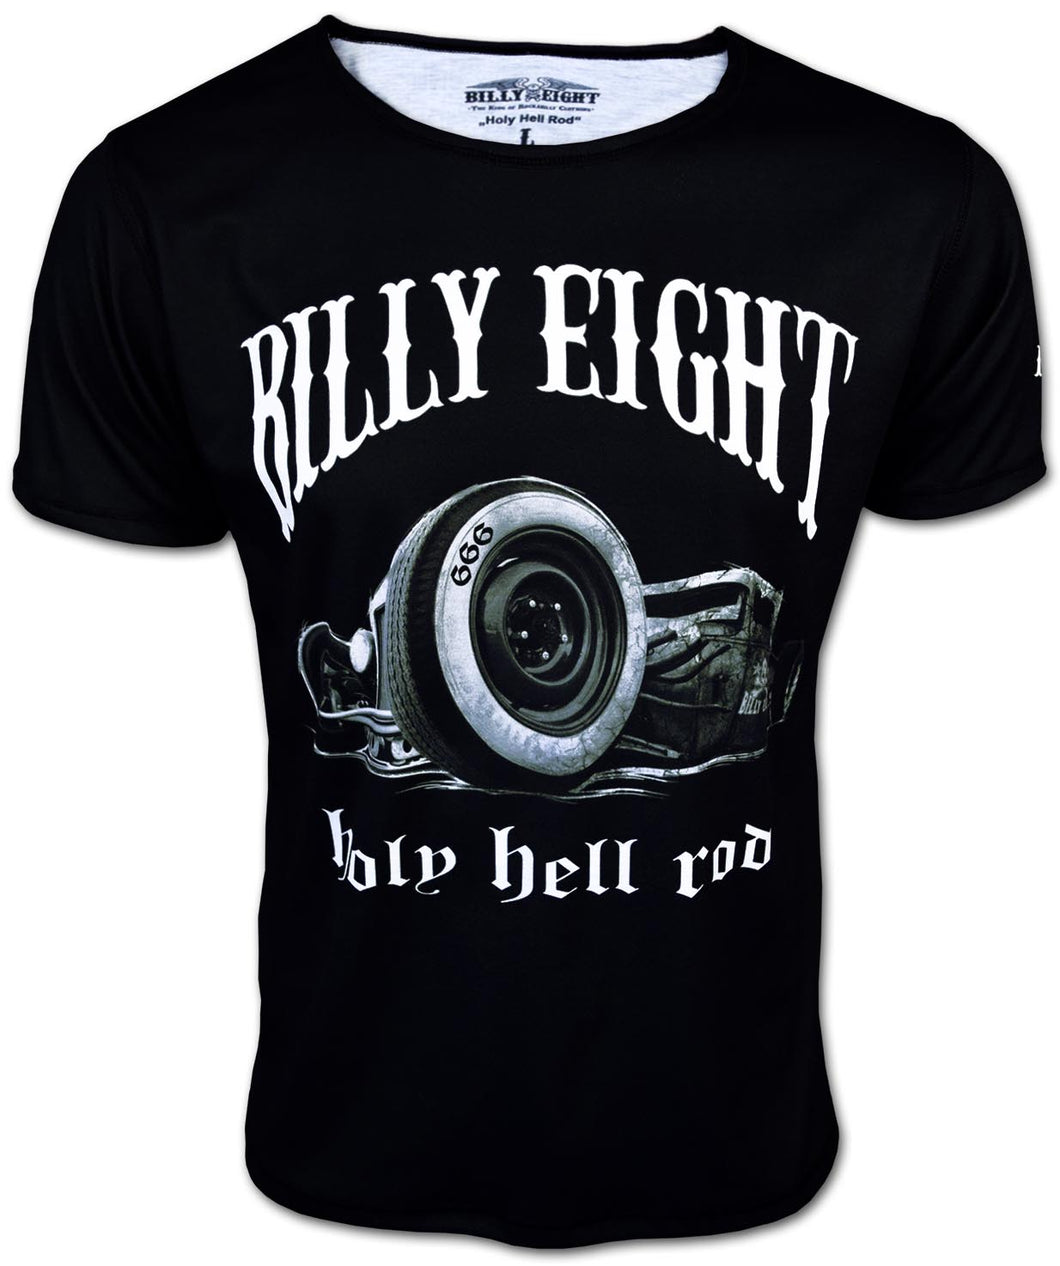 Billy Eight T-Shirt